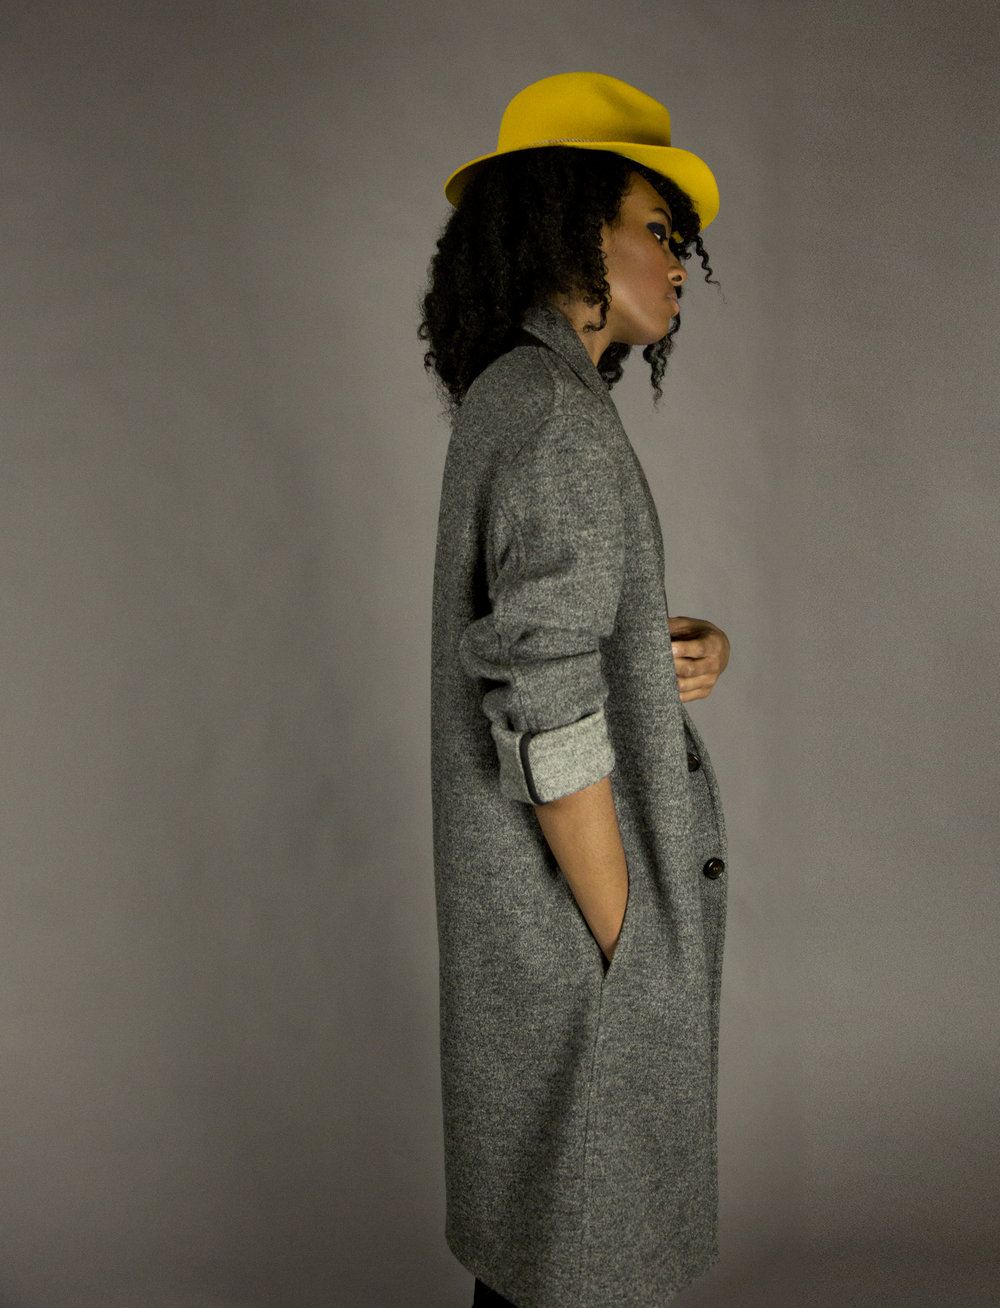 COAT 1 charcoal  2-button walking coat.oversized fit.drop shoulder. unlined with bias piped seams.natural melange rope detail at neck.natural horn buttons. below knee length.  sizes 0-1-2-3  100% italian felted wool